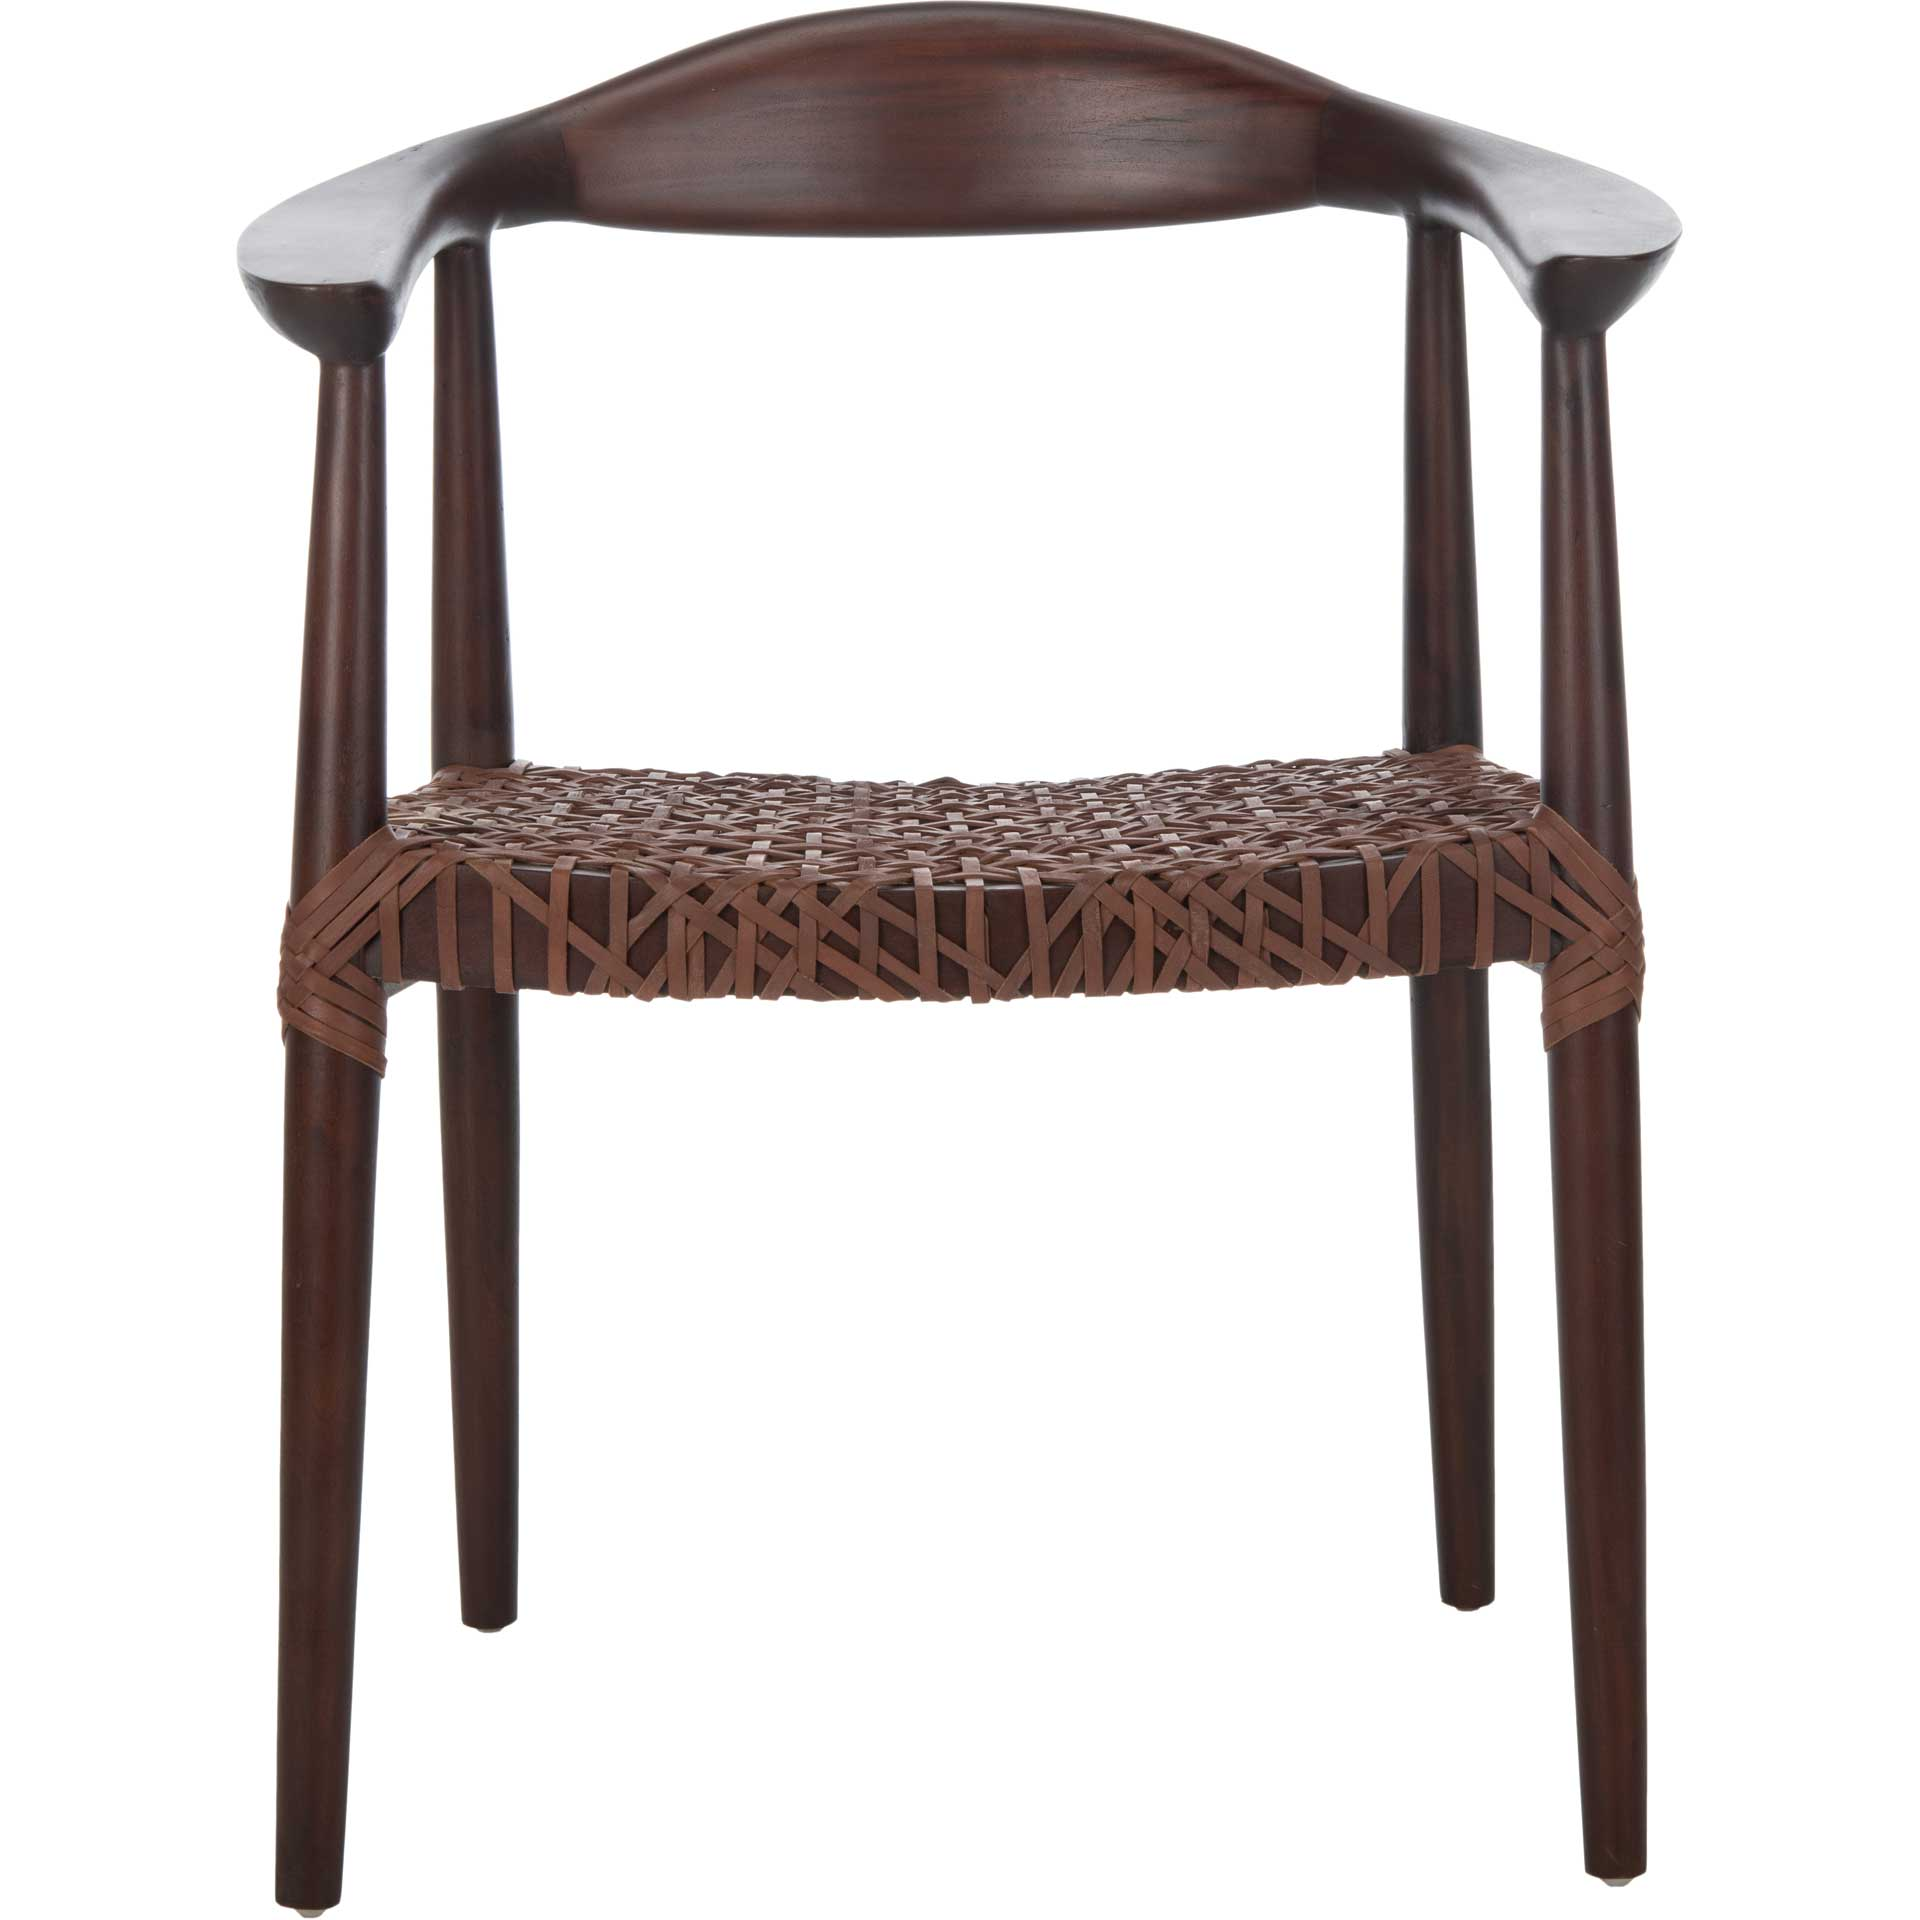 Justin Leather Woven Accent Chair Walnut/Brown